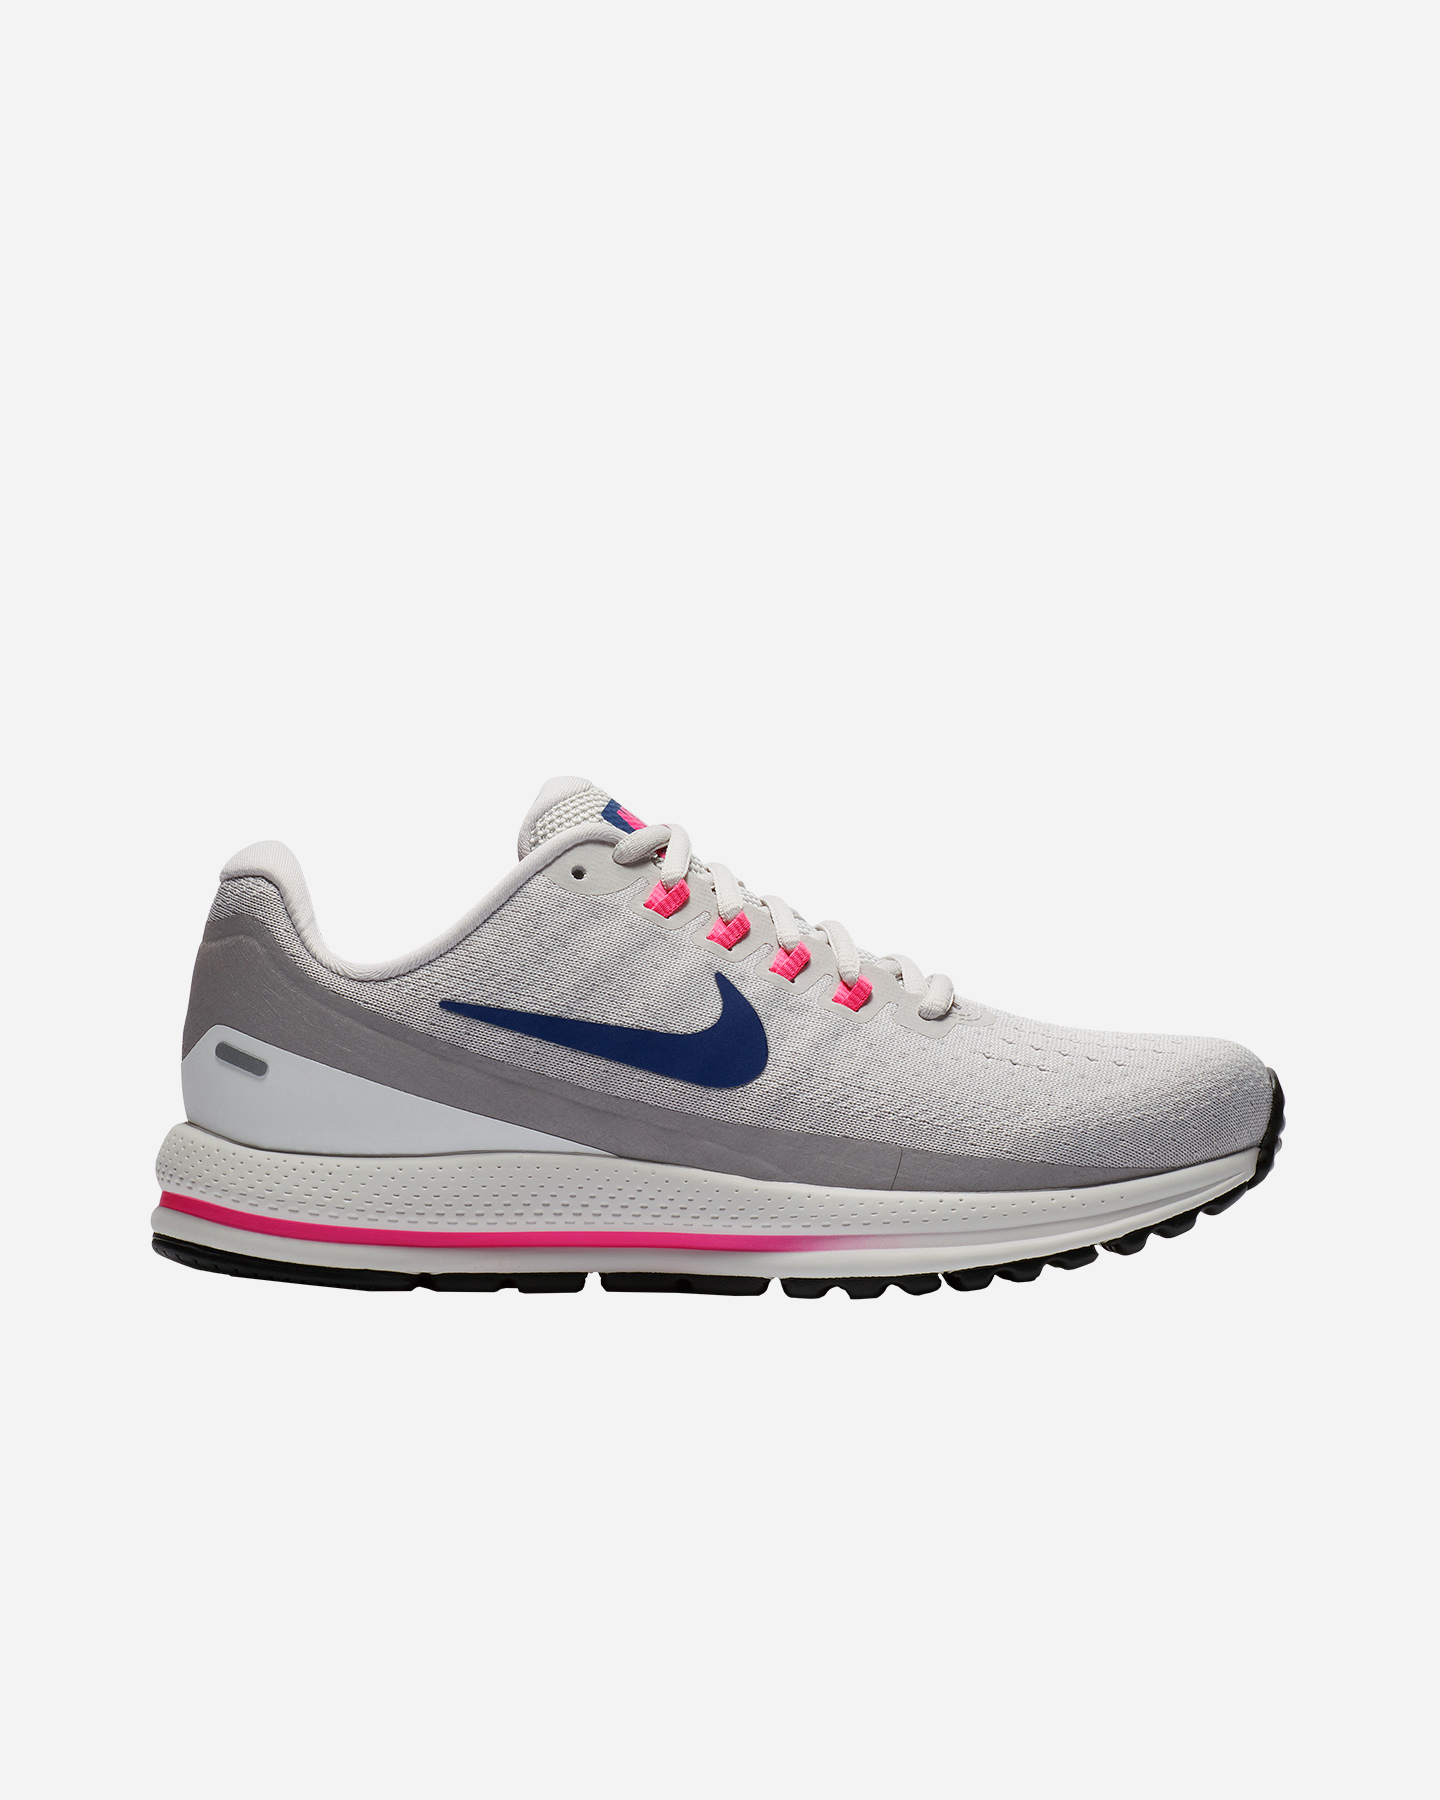 los angeles 0cbc5 01d30 Scarpe running NIKE AIR ZOOM VOMERO 13 W ...